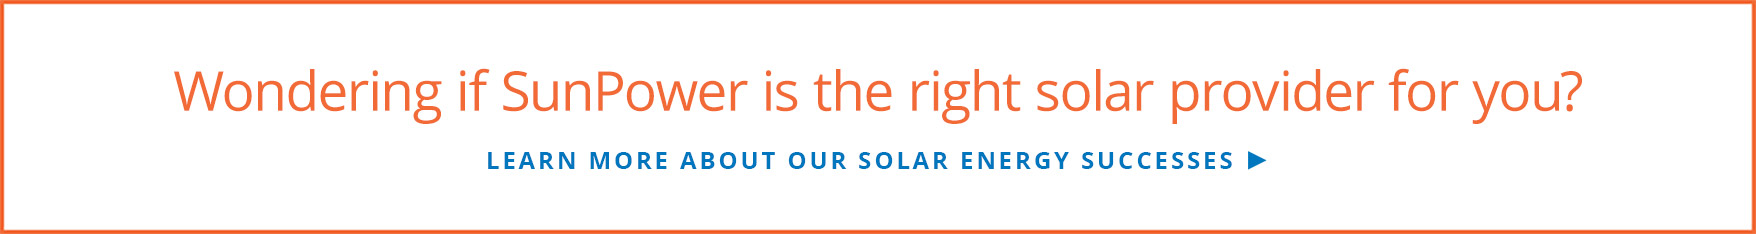 Learn more about our solar energy successes